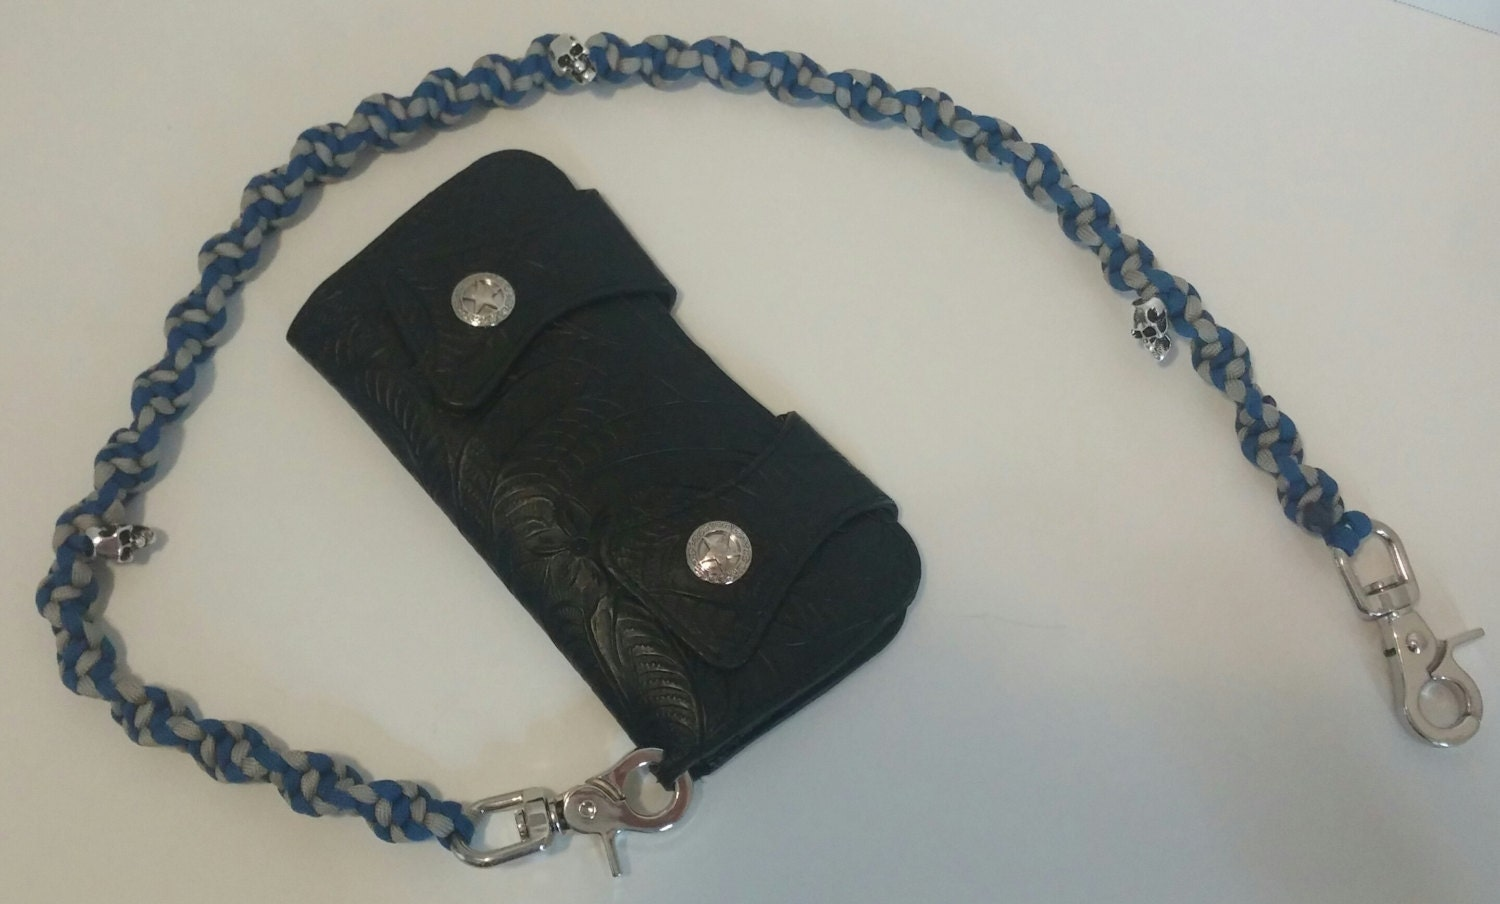 Paracord wallet chain by bulenscreations on etsy for How to make a paracord wallet chain